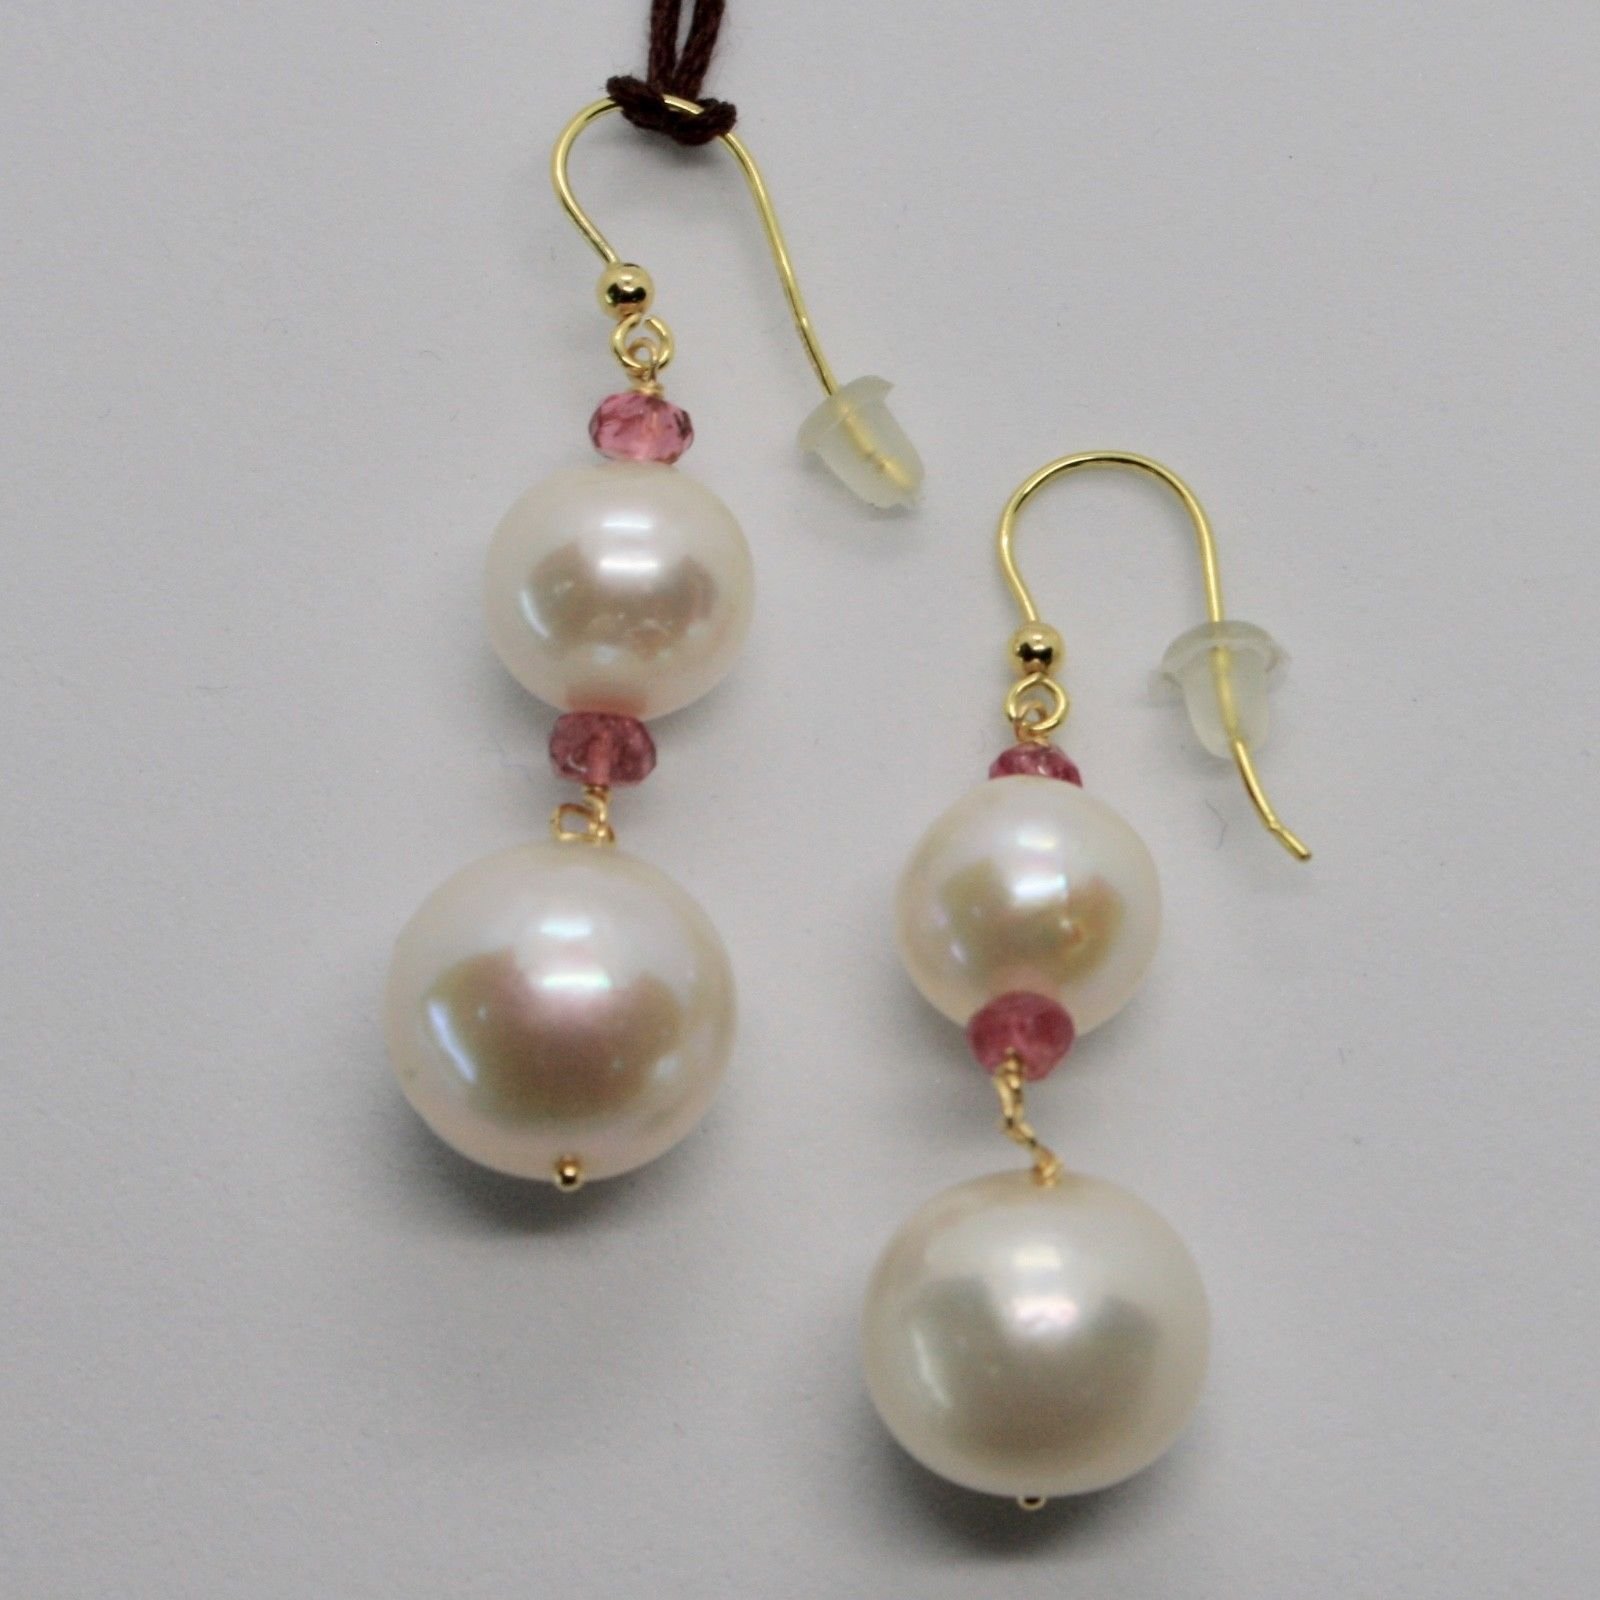 Yellow Gold Earrings 18k 750 Freshwater Pearls Pink Tourmaline Made in Italy